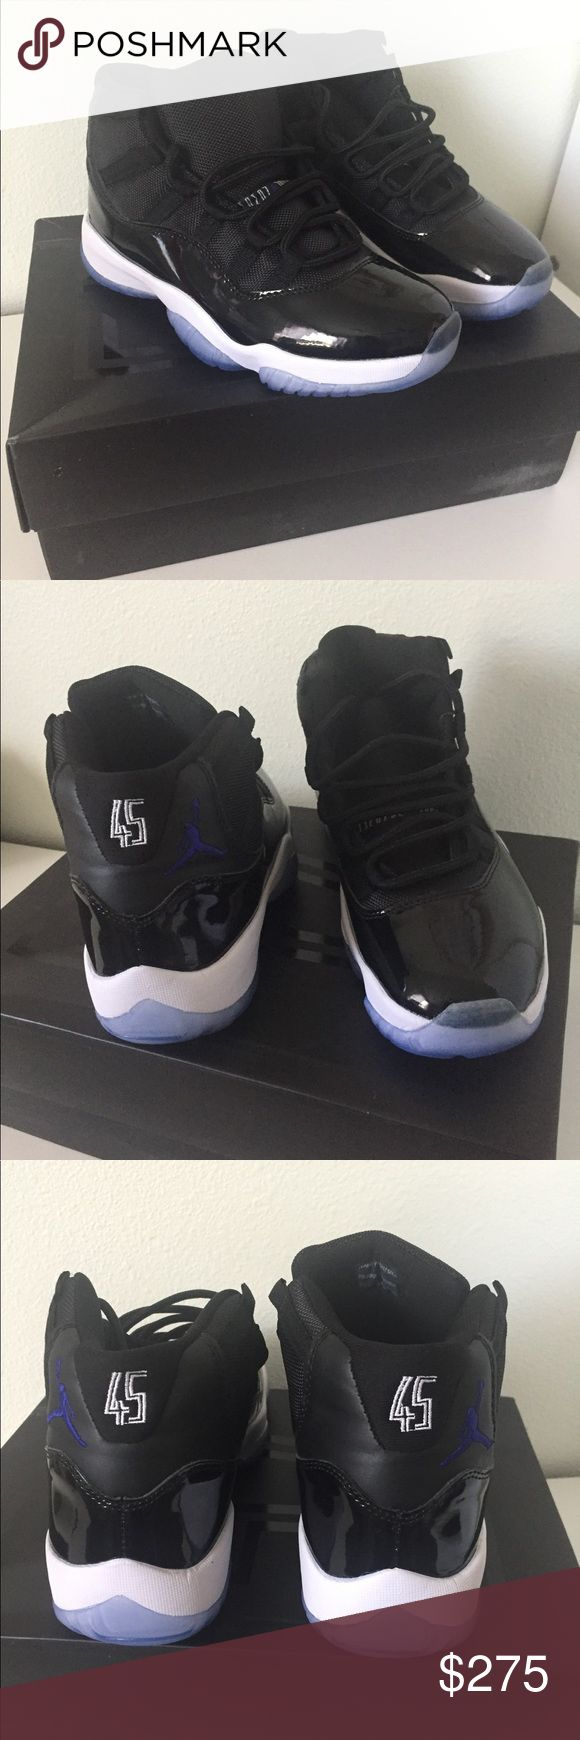 🆕✨Jordan Space Jam 11 Shoes Size 8 🔴2016 Release 🔴 Brand New didn't fit my uncle so selling for him. Still have original box, they are a really nice pair of Jordan's. Just want to get his money back so he can buy a bigger size. Air Jordan Shoes Athletic Shoes